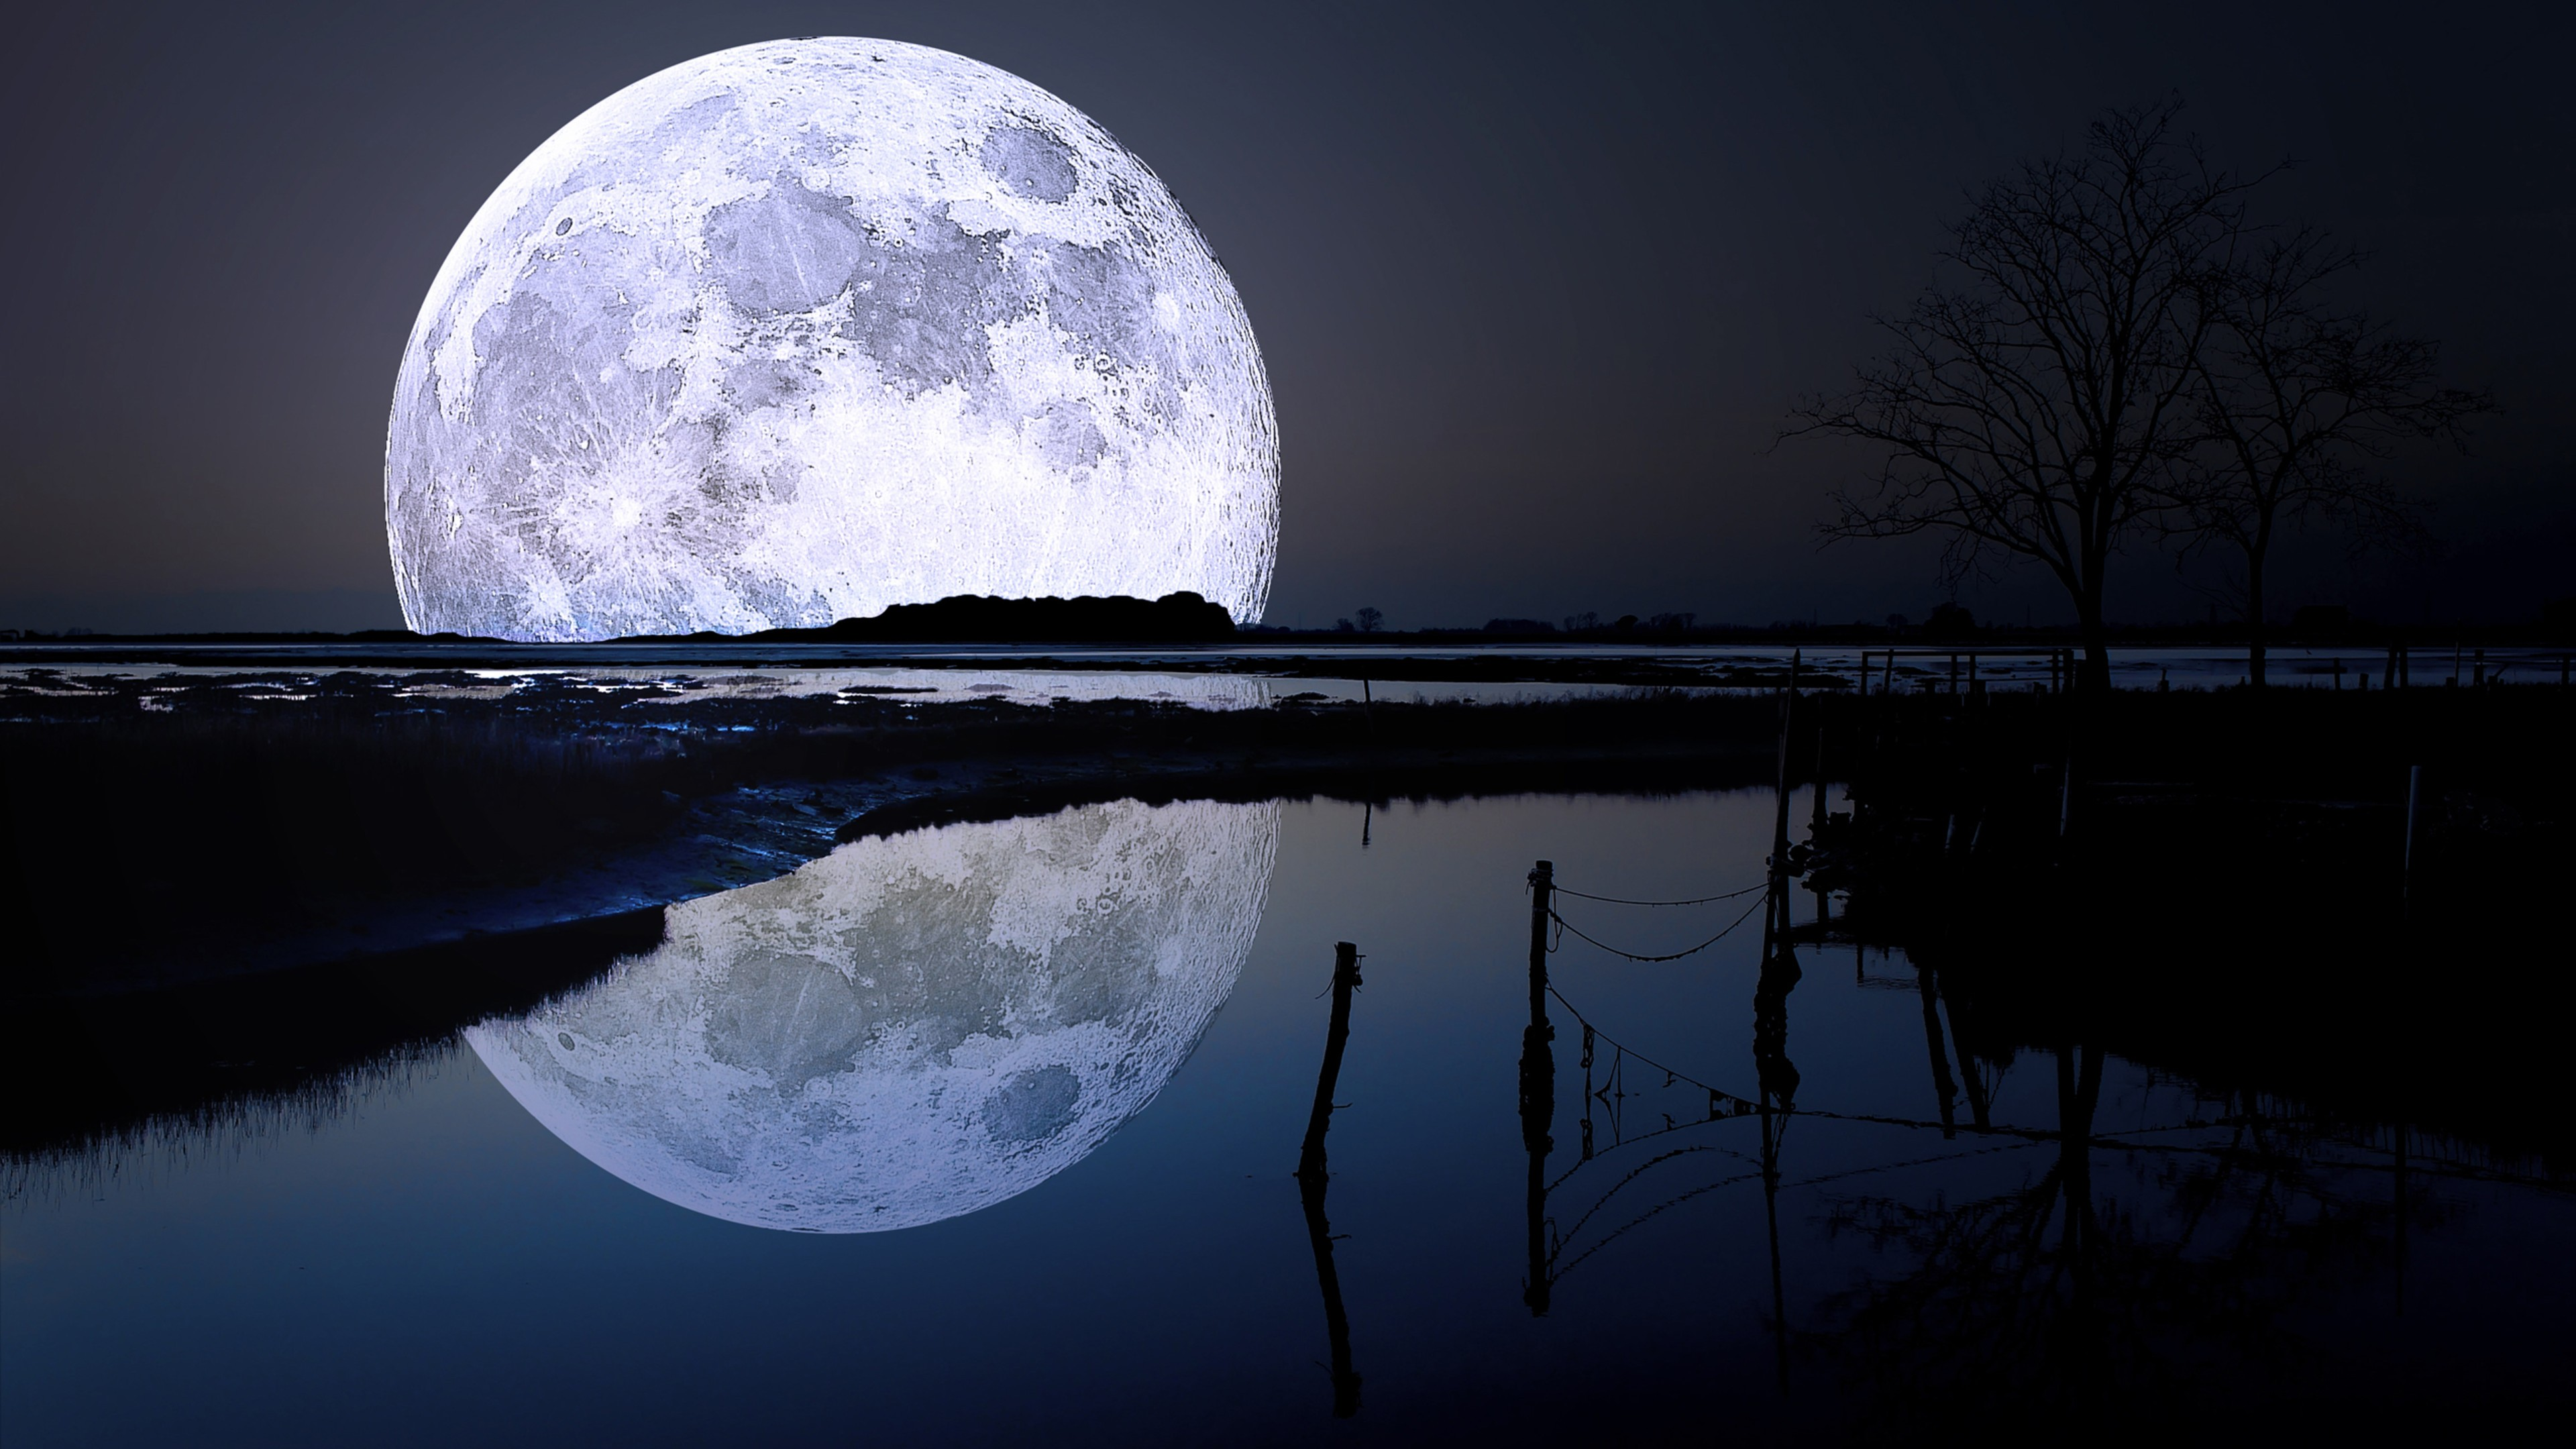 FULL MOON DIRECT ONLINE MARKETPLACE